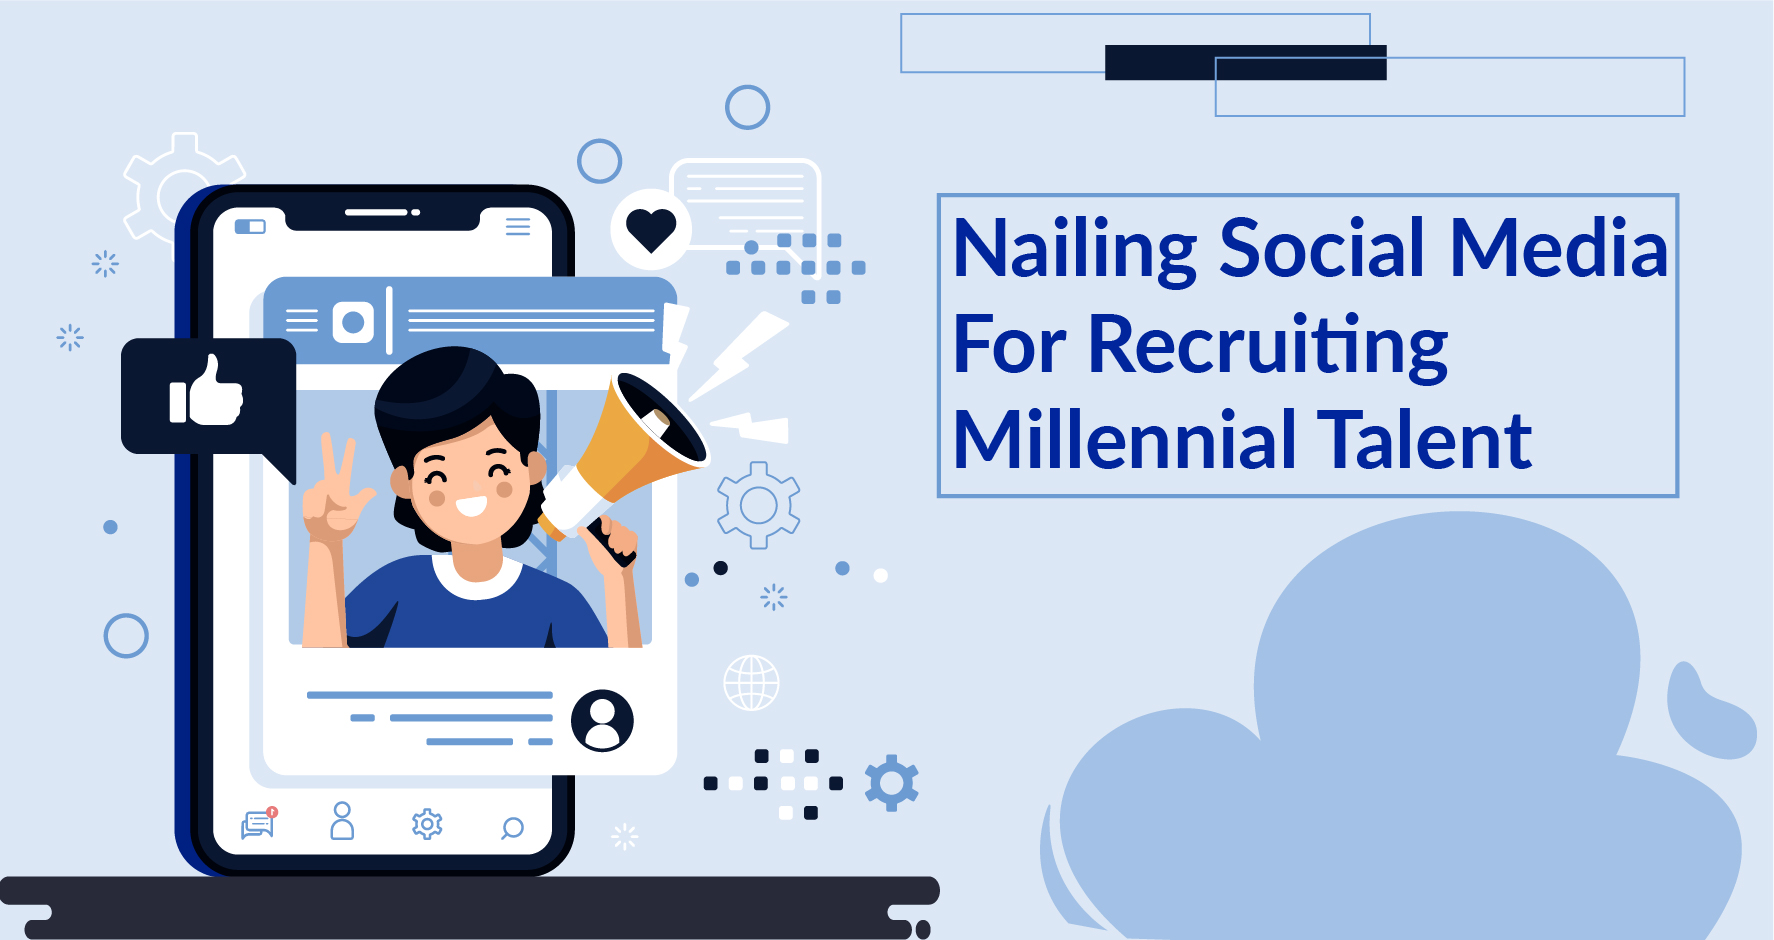 Nailing Social Media for Recruiting